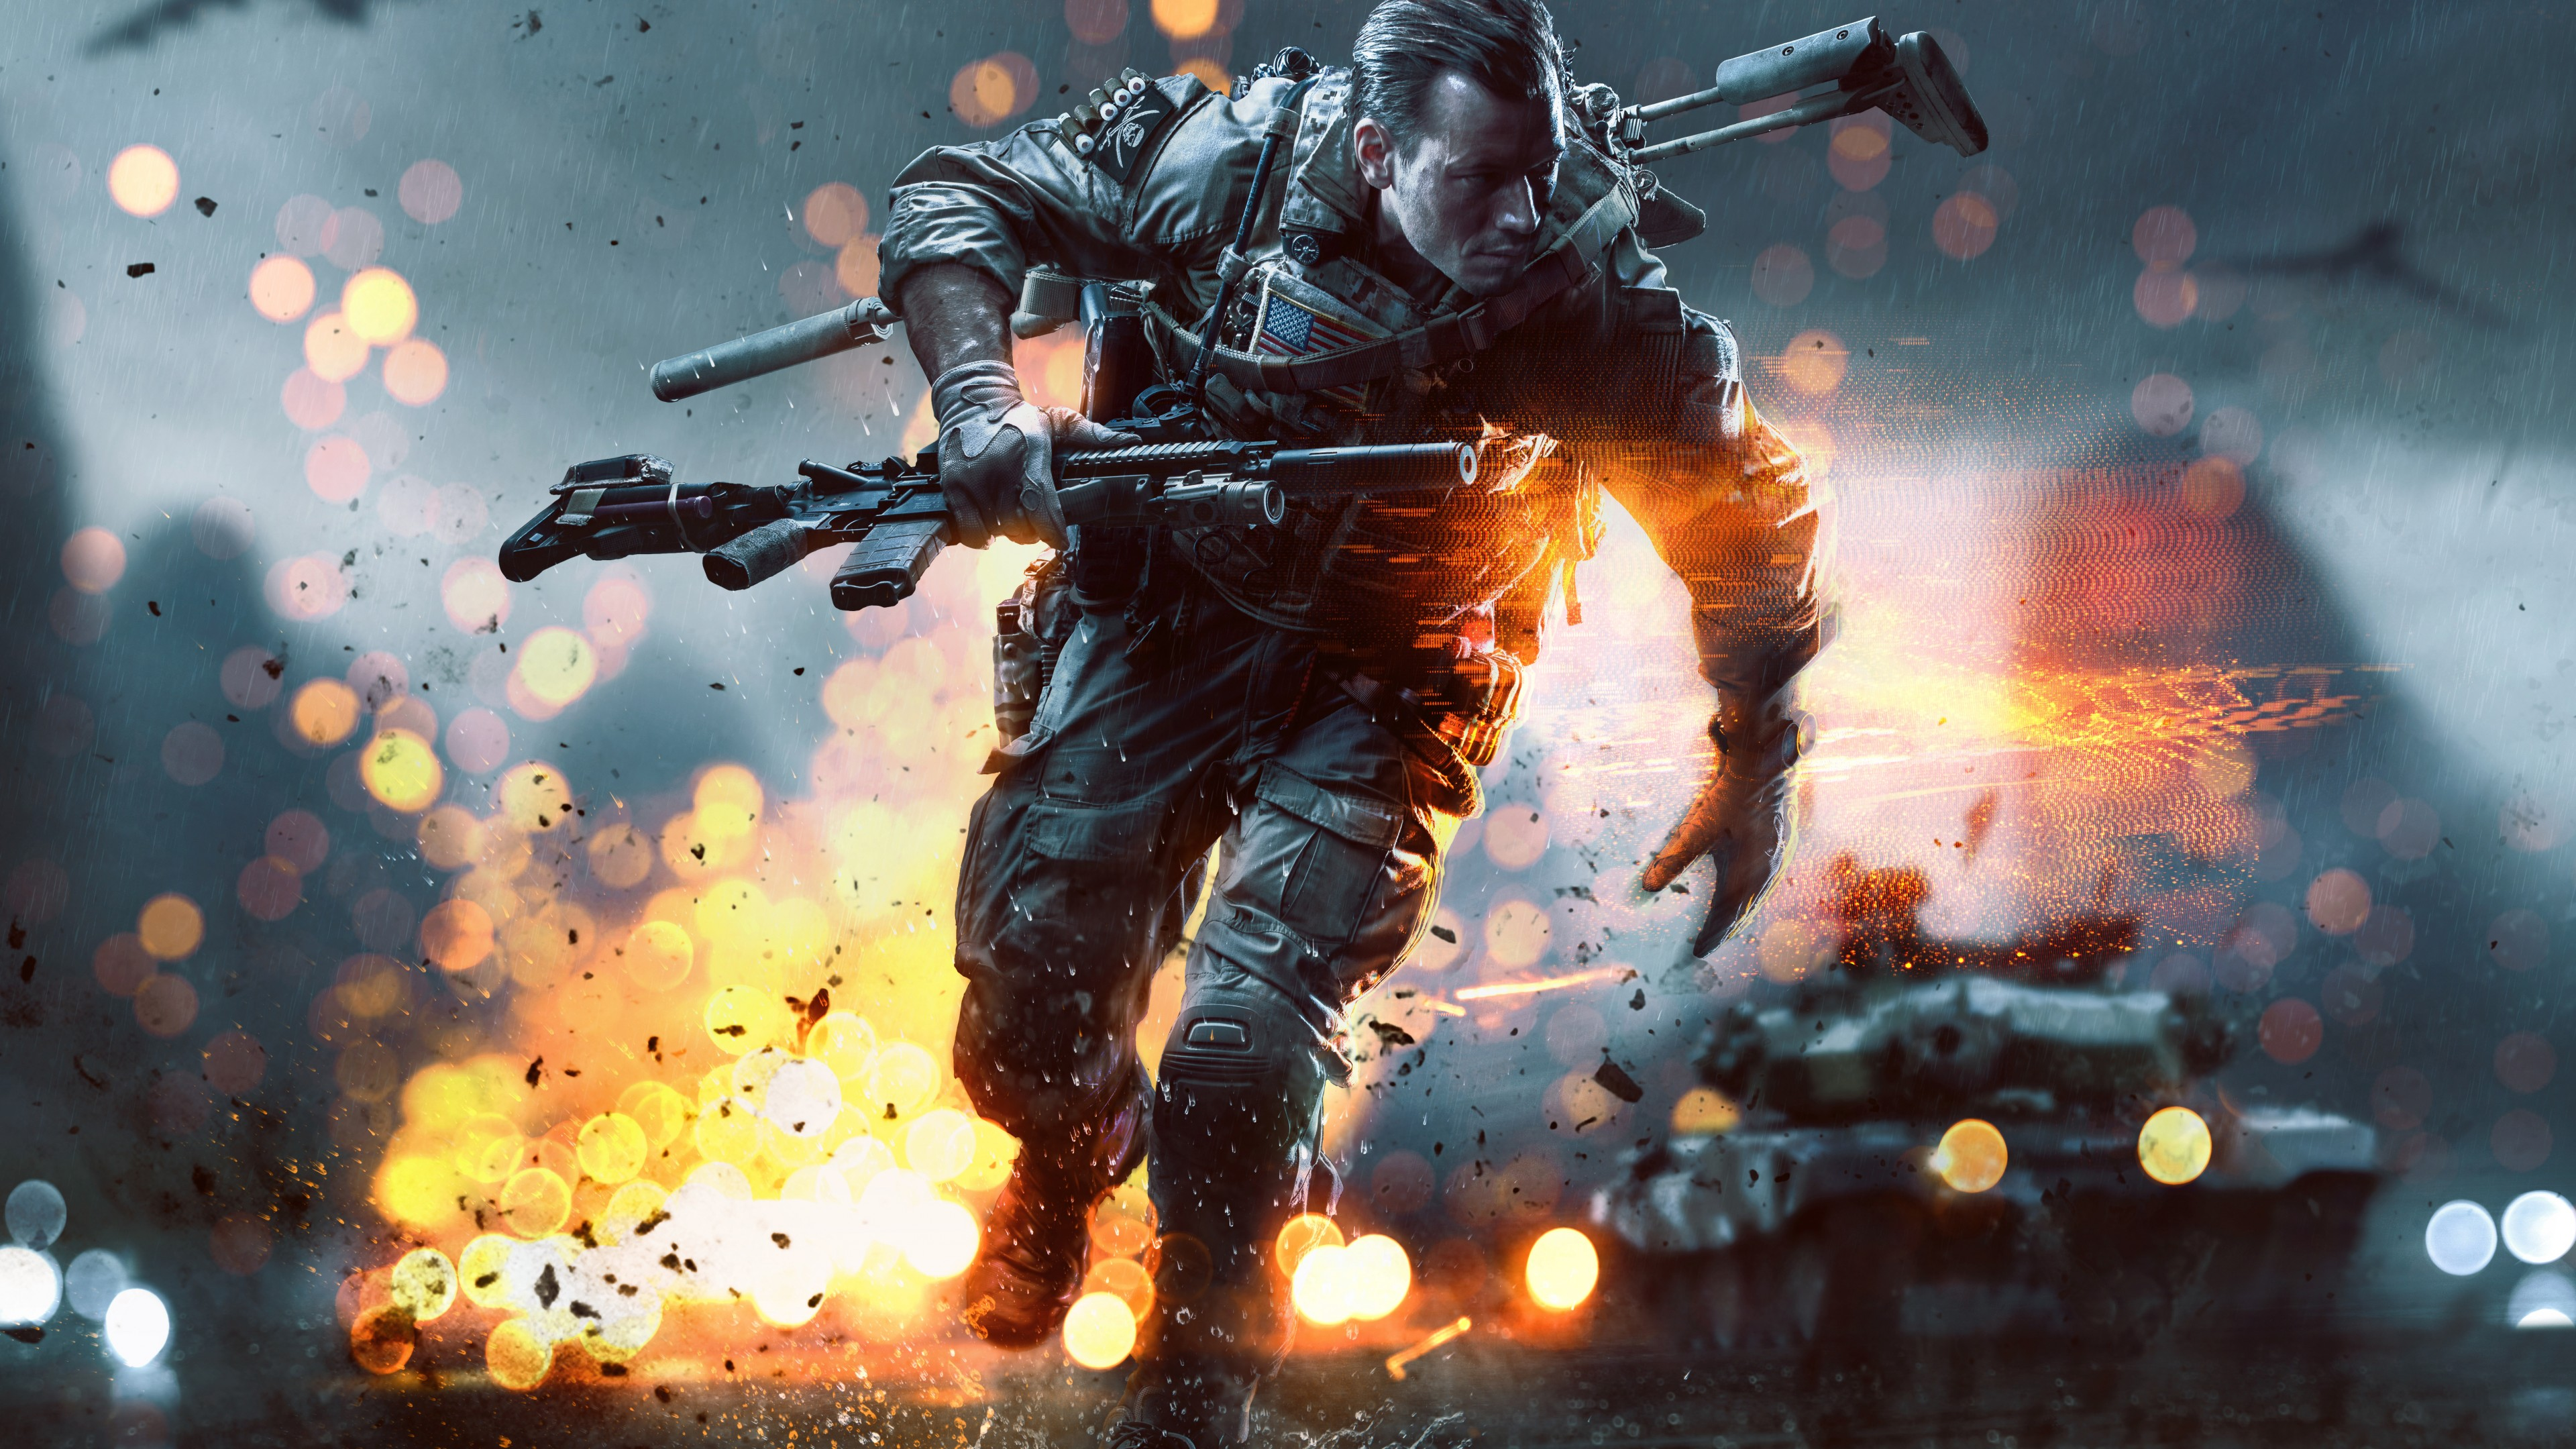 Wallpaper Battlefield Hardline Game Shooter Soldier Gun Fire